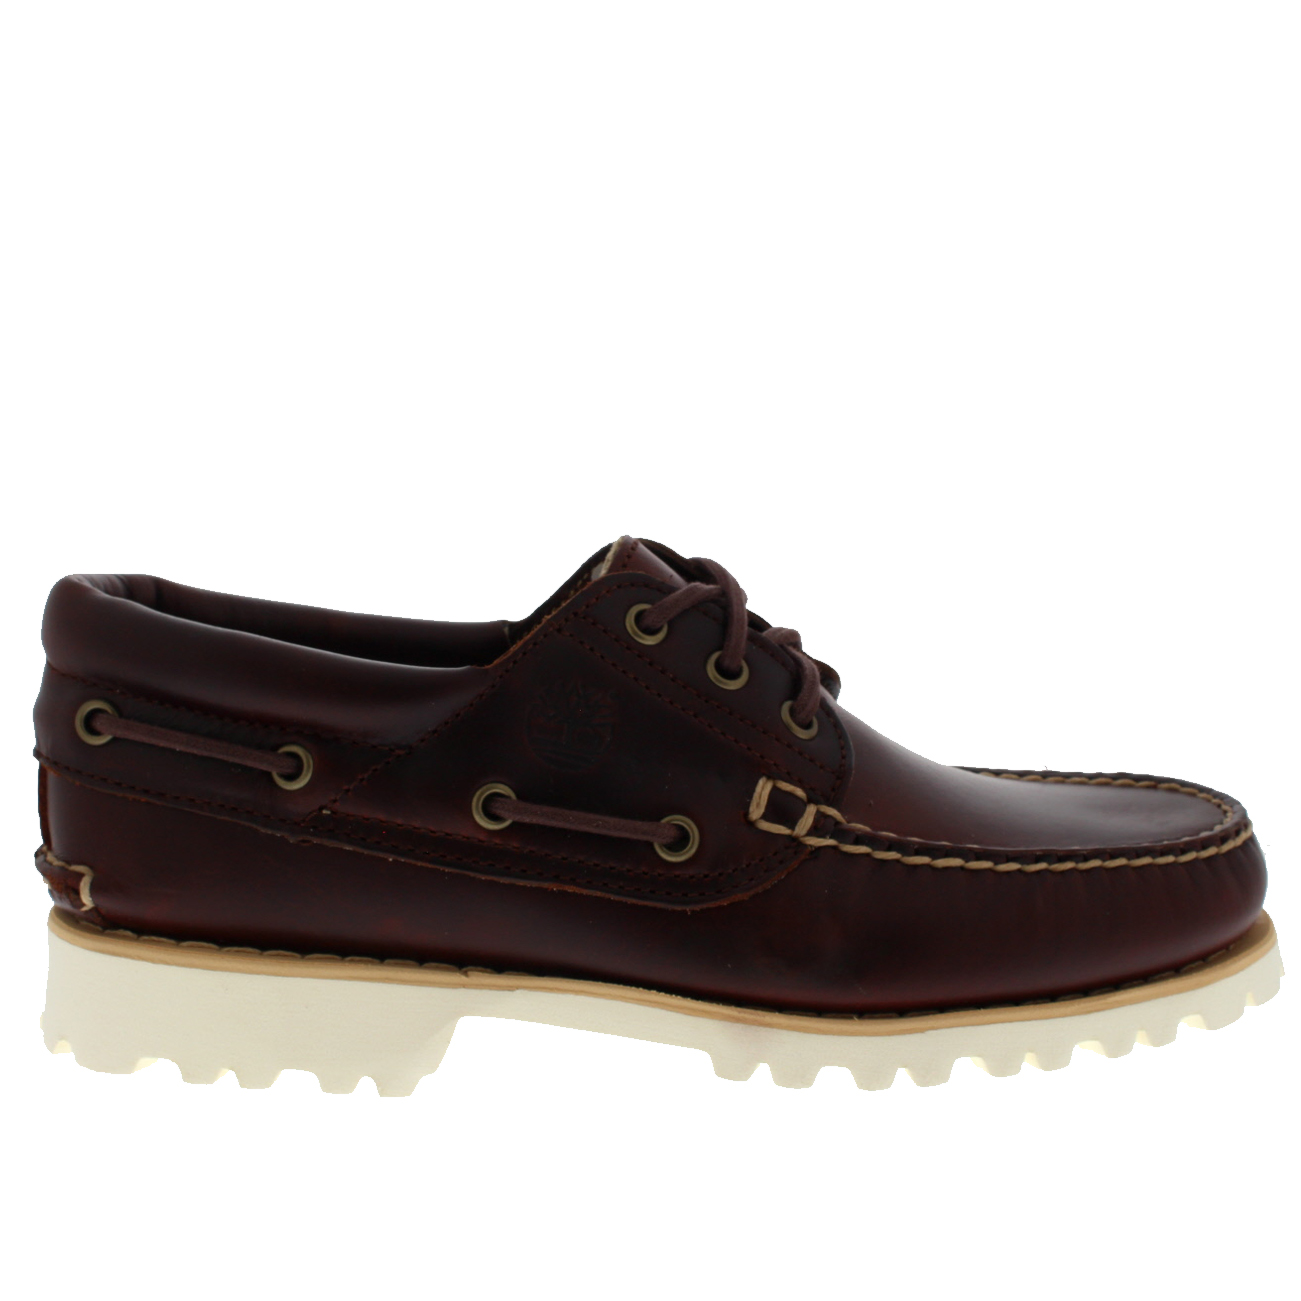 18c09a51 Mens Timberland Chilmark 3 Eye Hand Shoes Leather Smart Casual ...